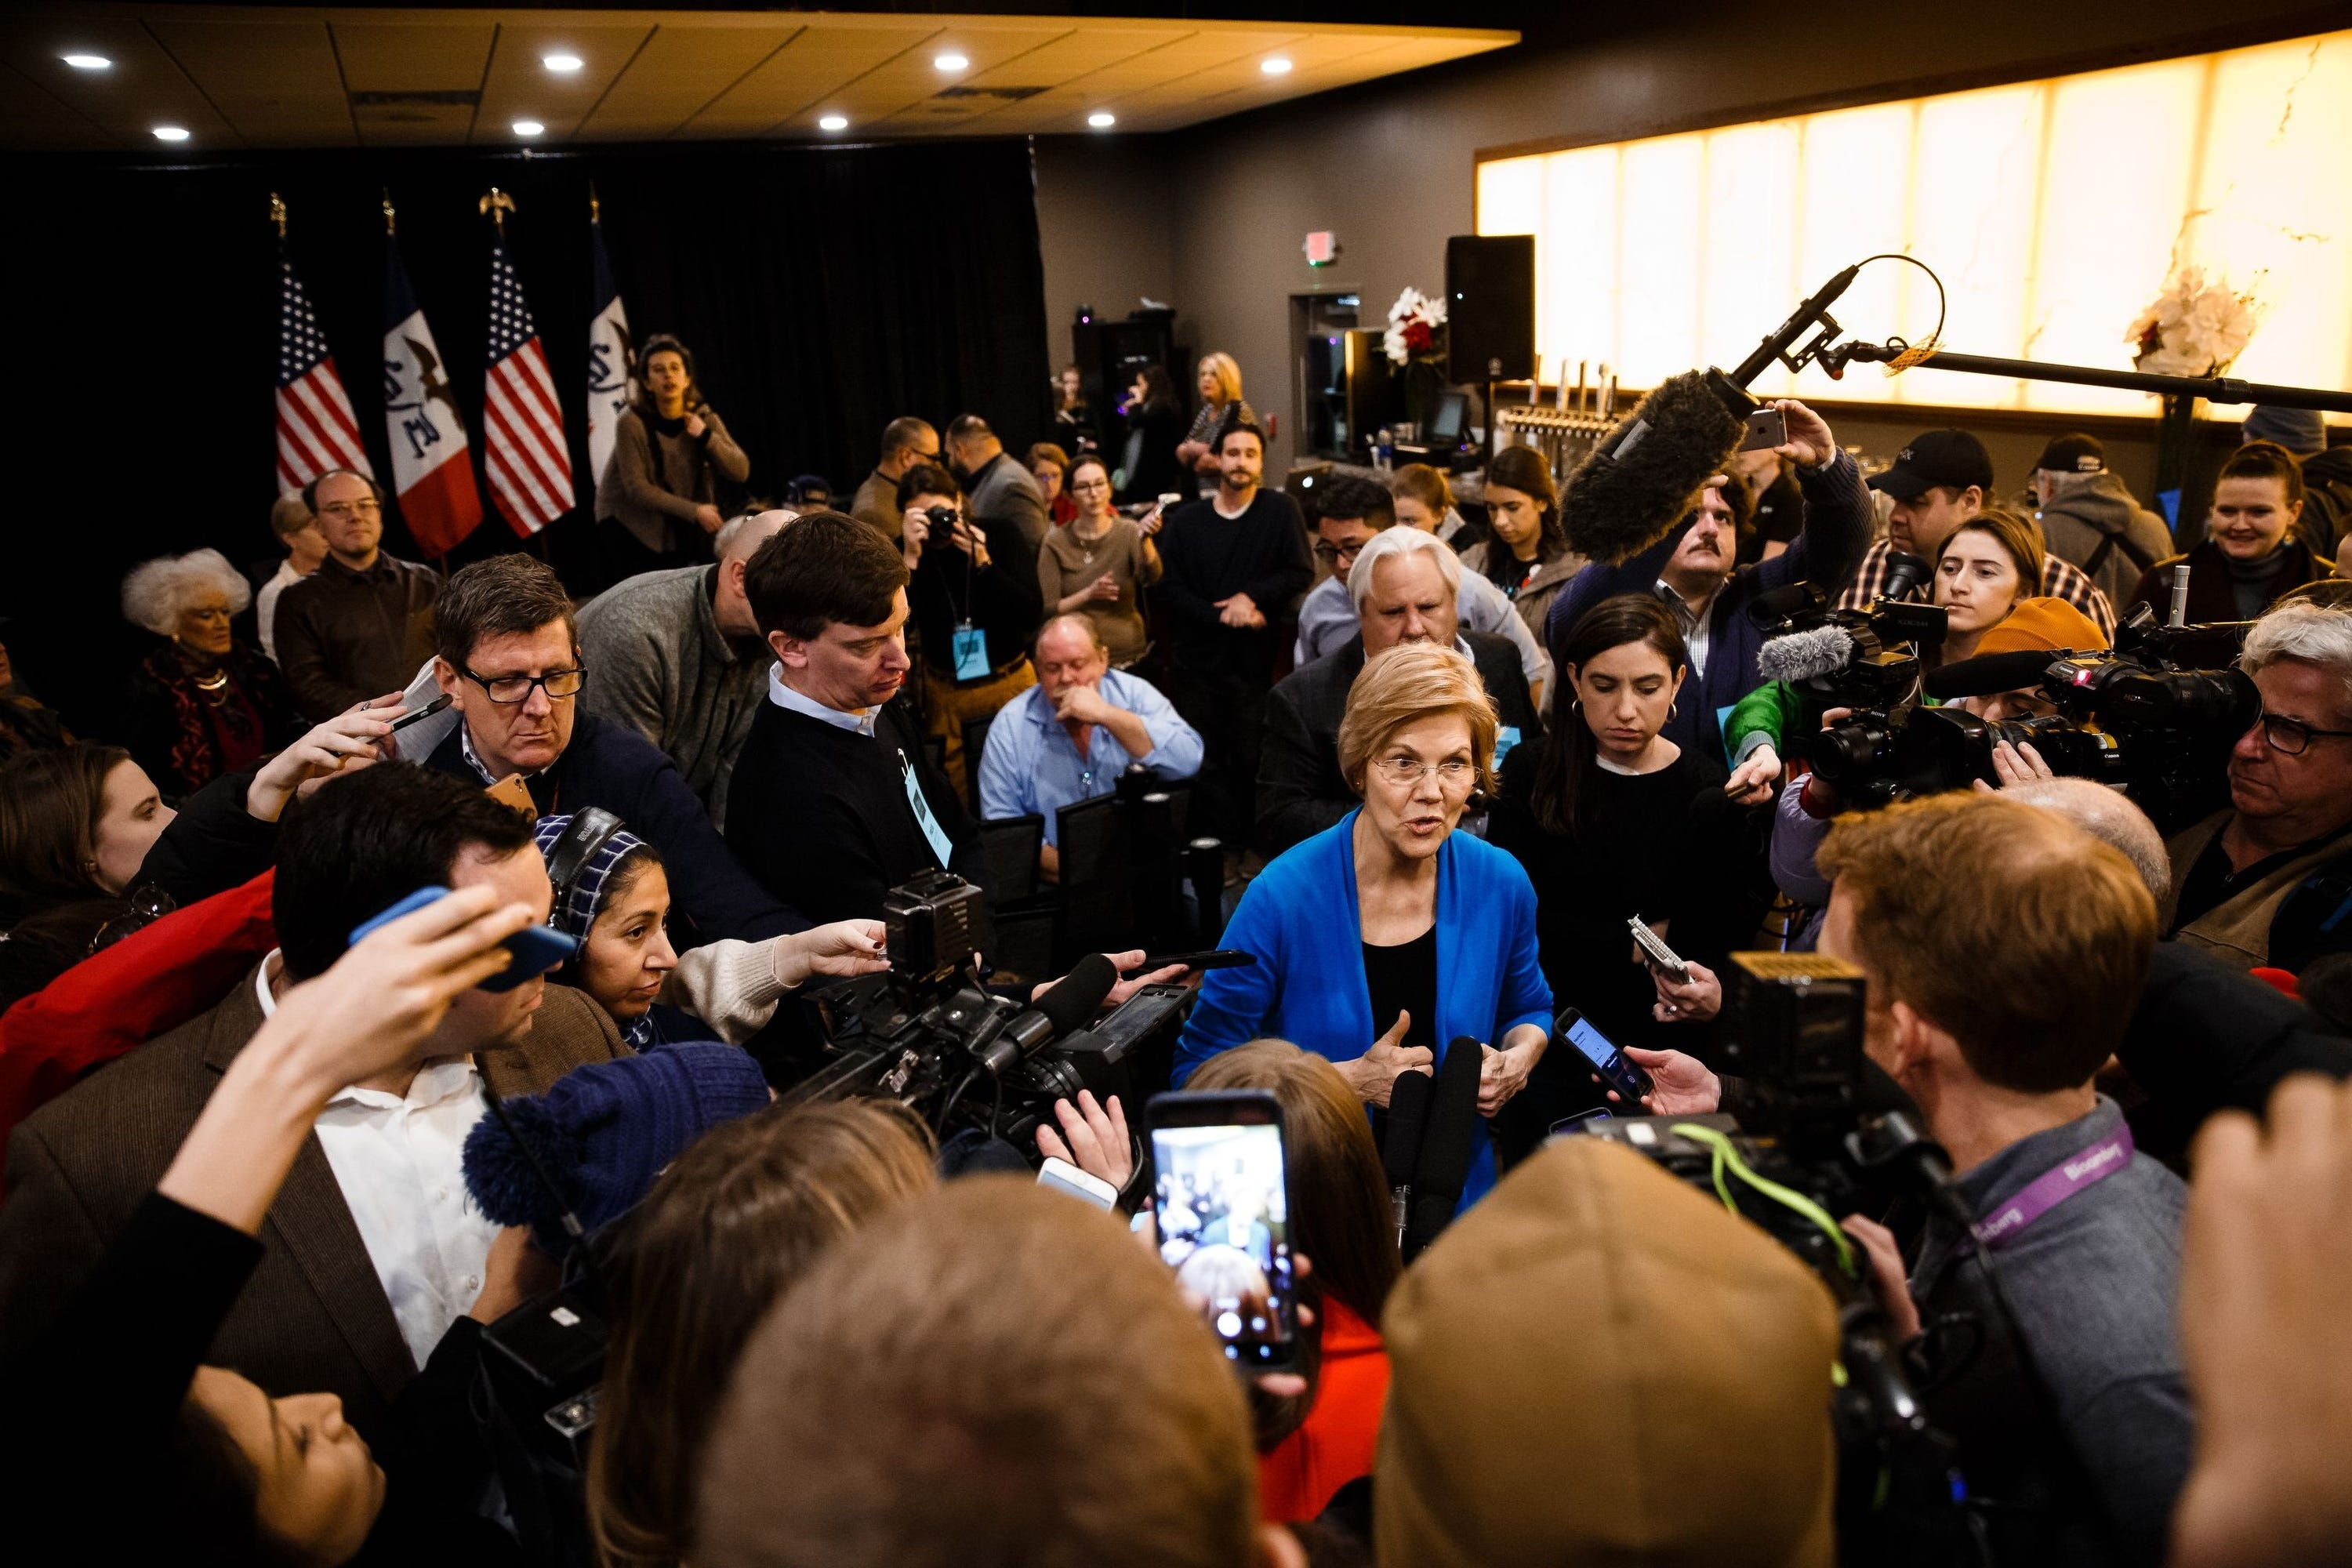 Senator Elizabeth Warren, D-Ma, announced she was running for president on Feb. 9, 2019.